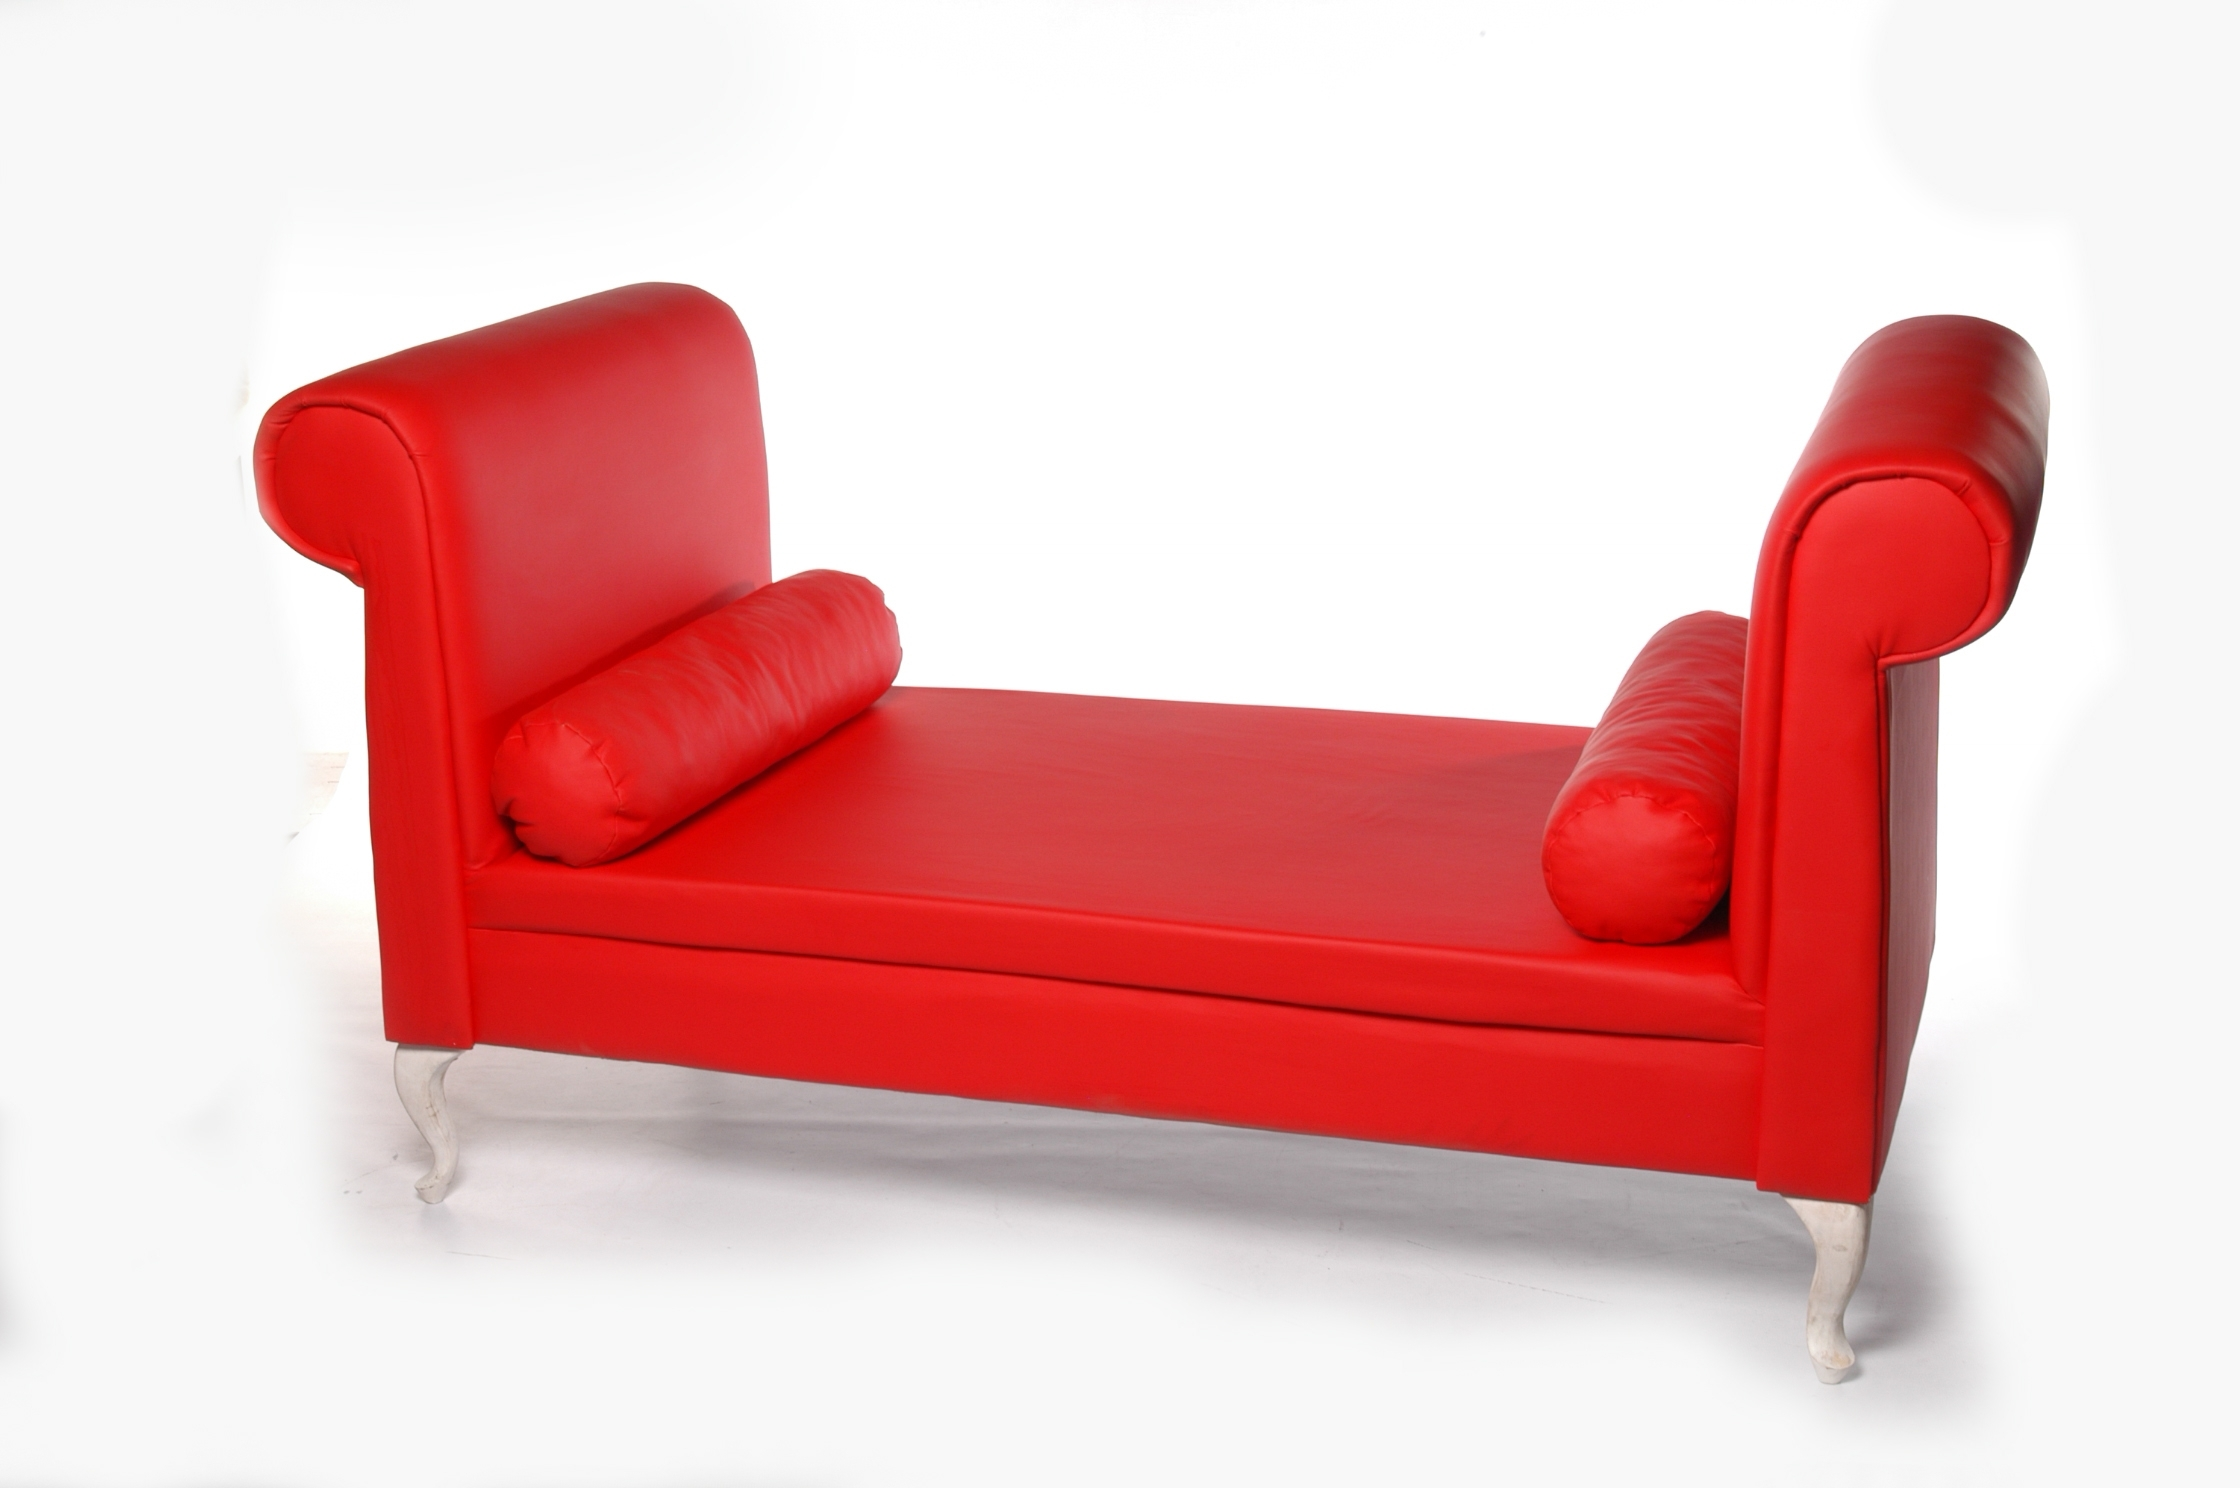 Red Chaise Lounges With Regard To Newest Really Exotic Designs And Decoration Red Chaise Lounge In The (View 14 of 15)